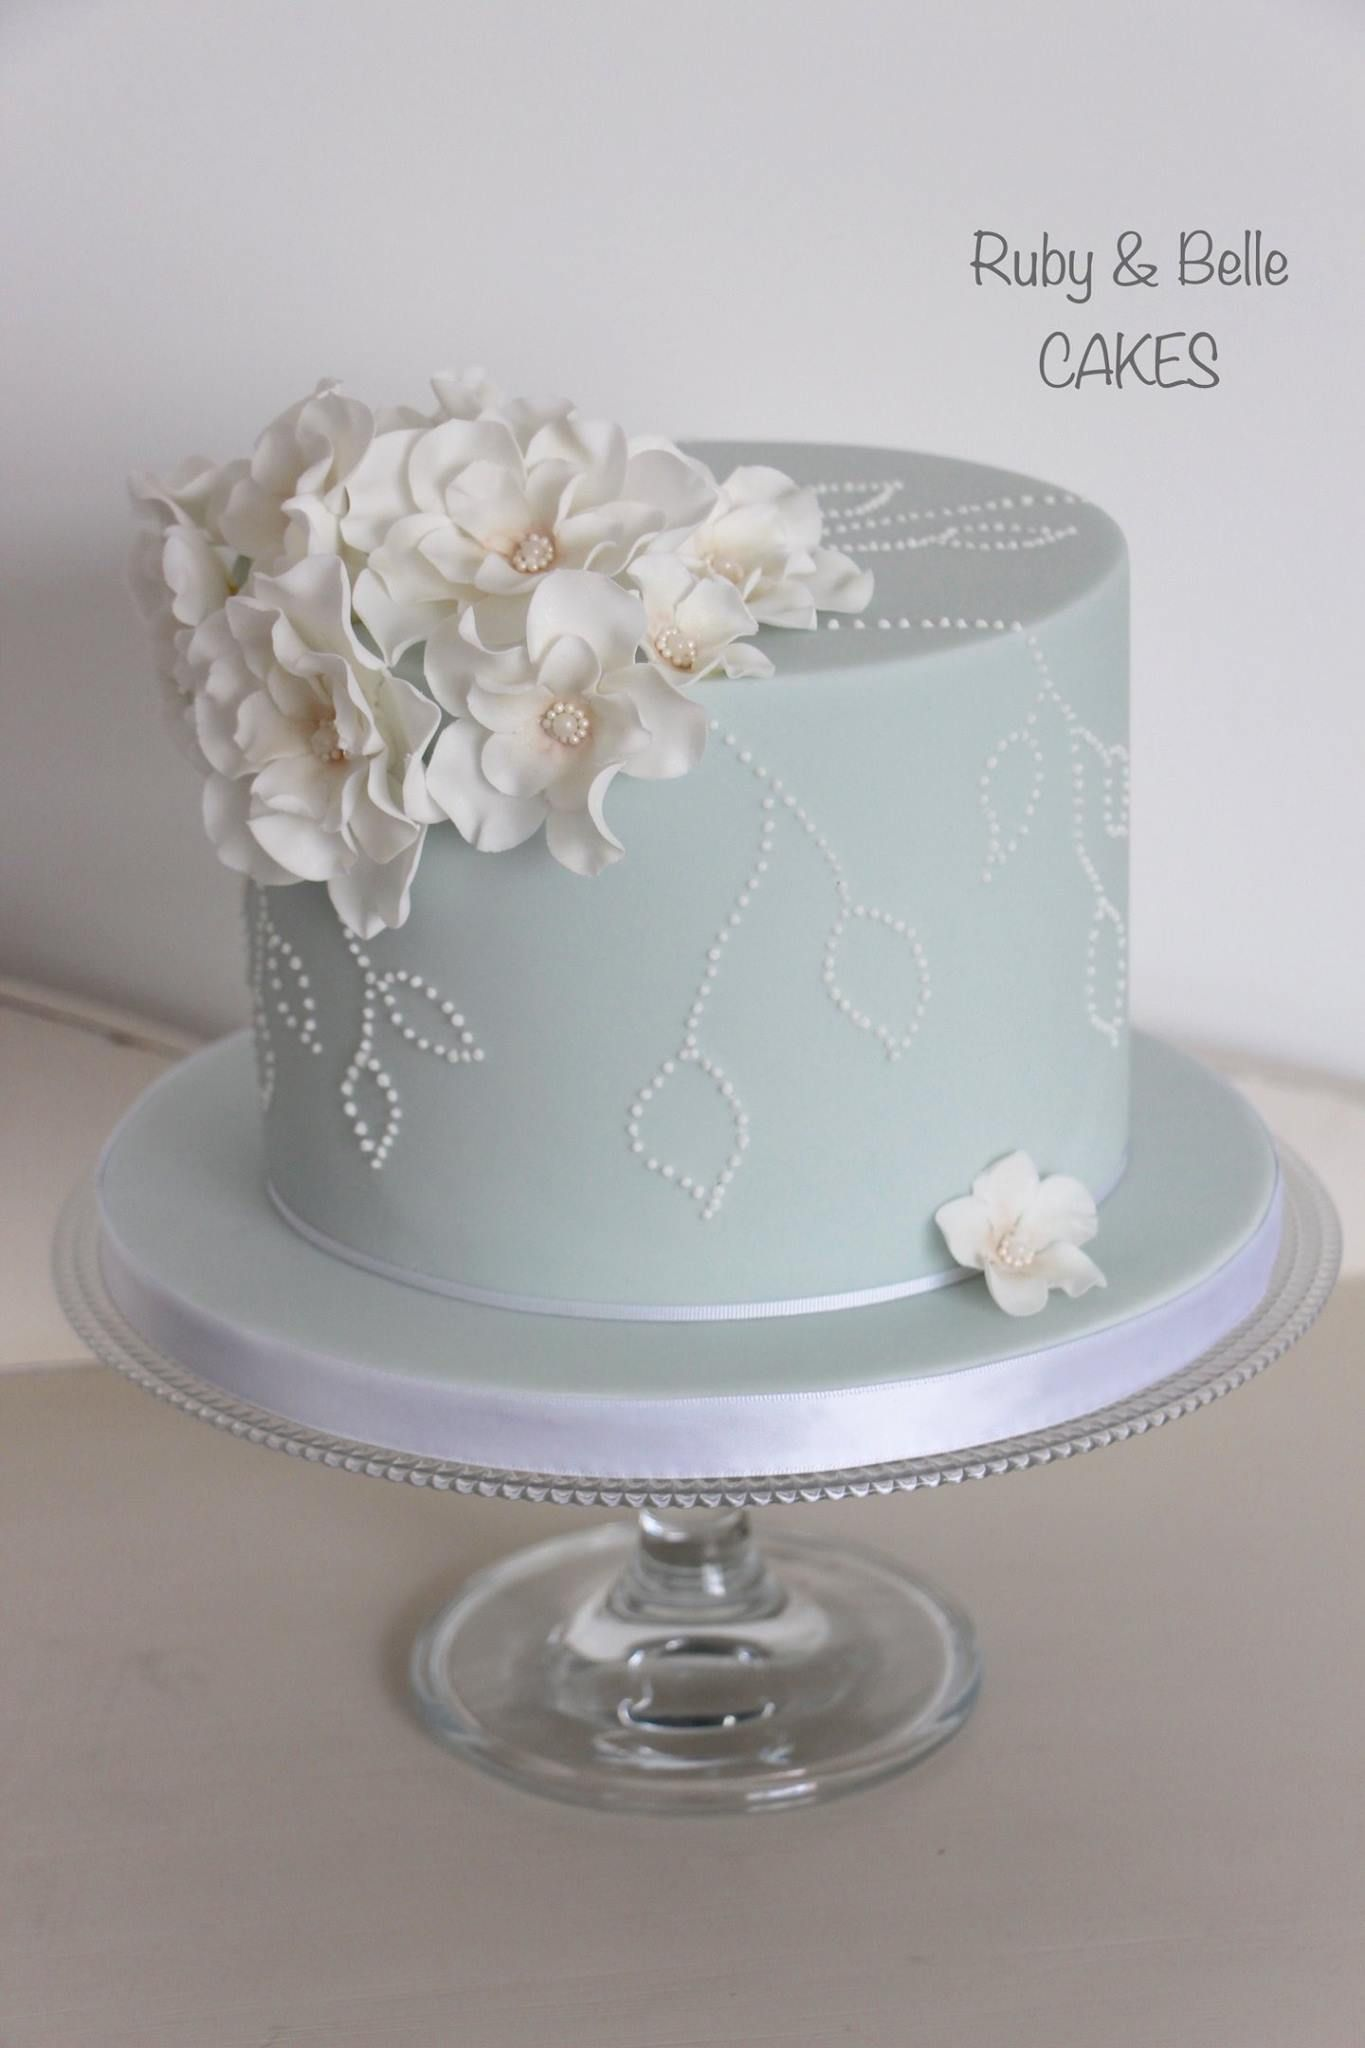 Single tier celebration or wedding cake with delicate